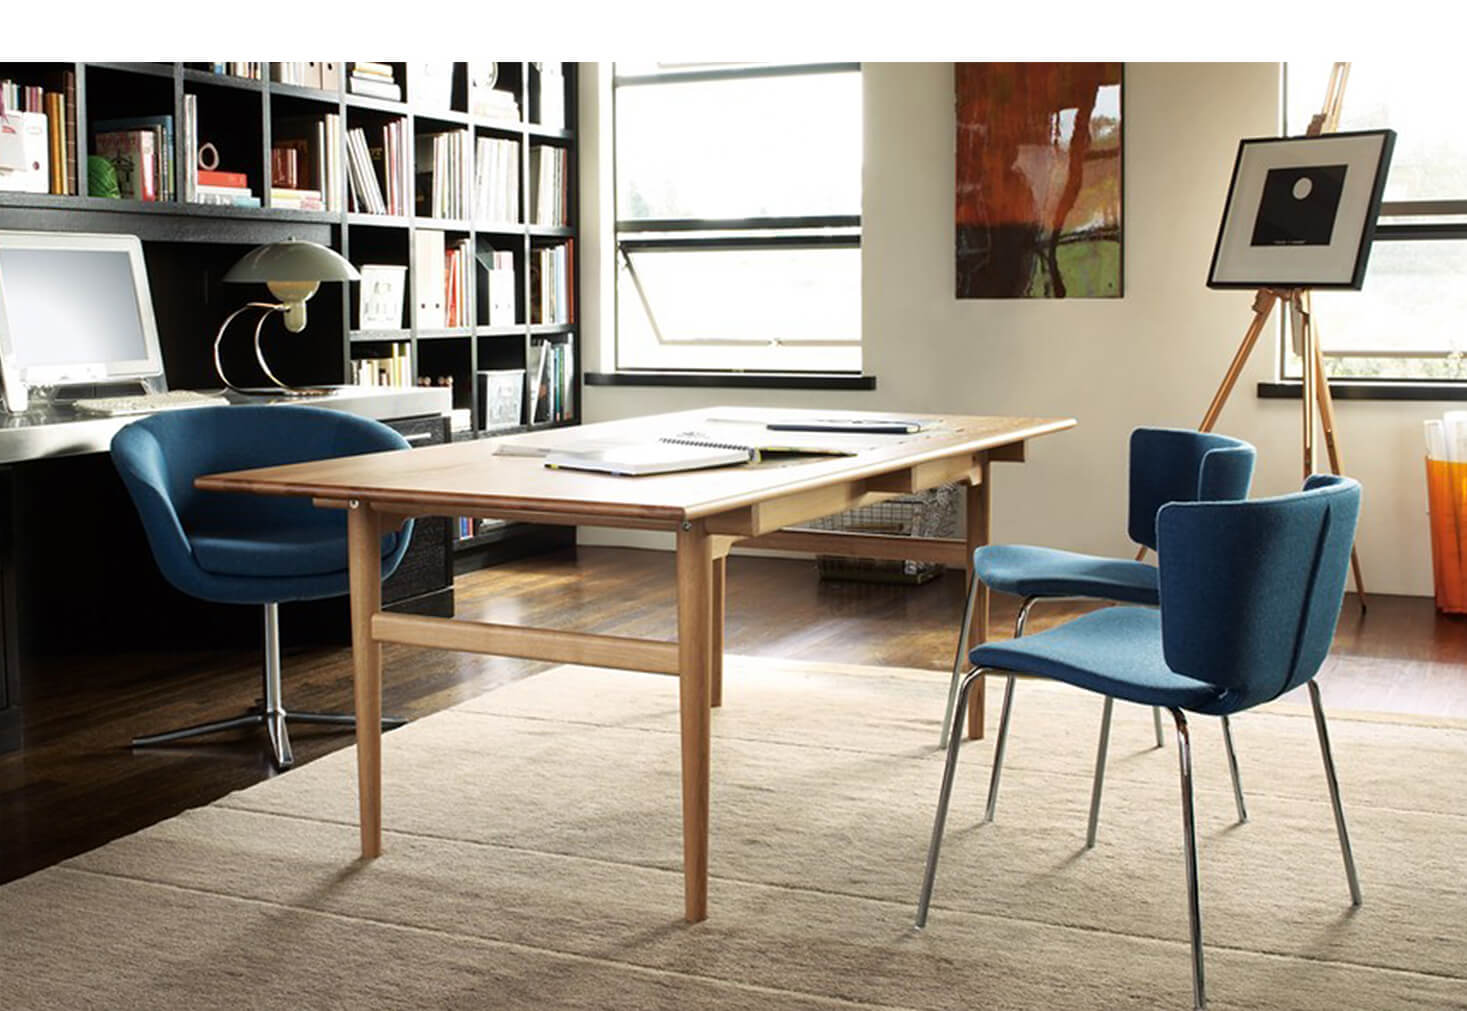 A long table in between 3 blue chairs in front of a book shelf by OFDC Commercial Interiors